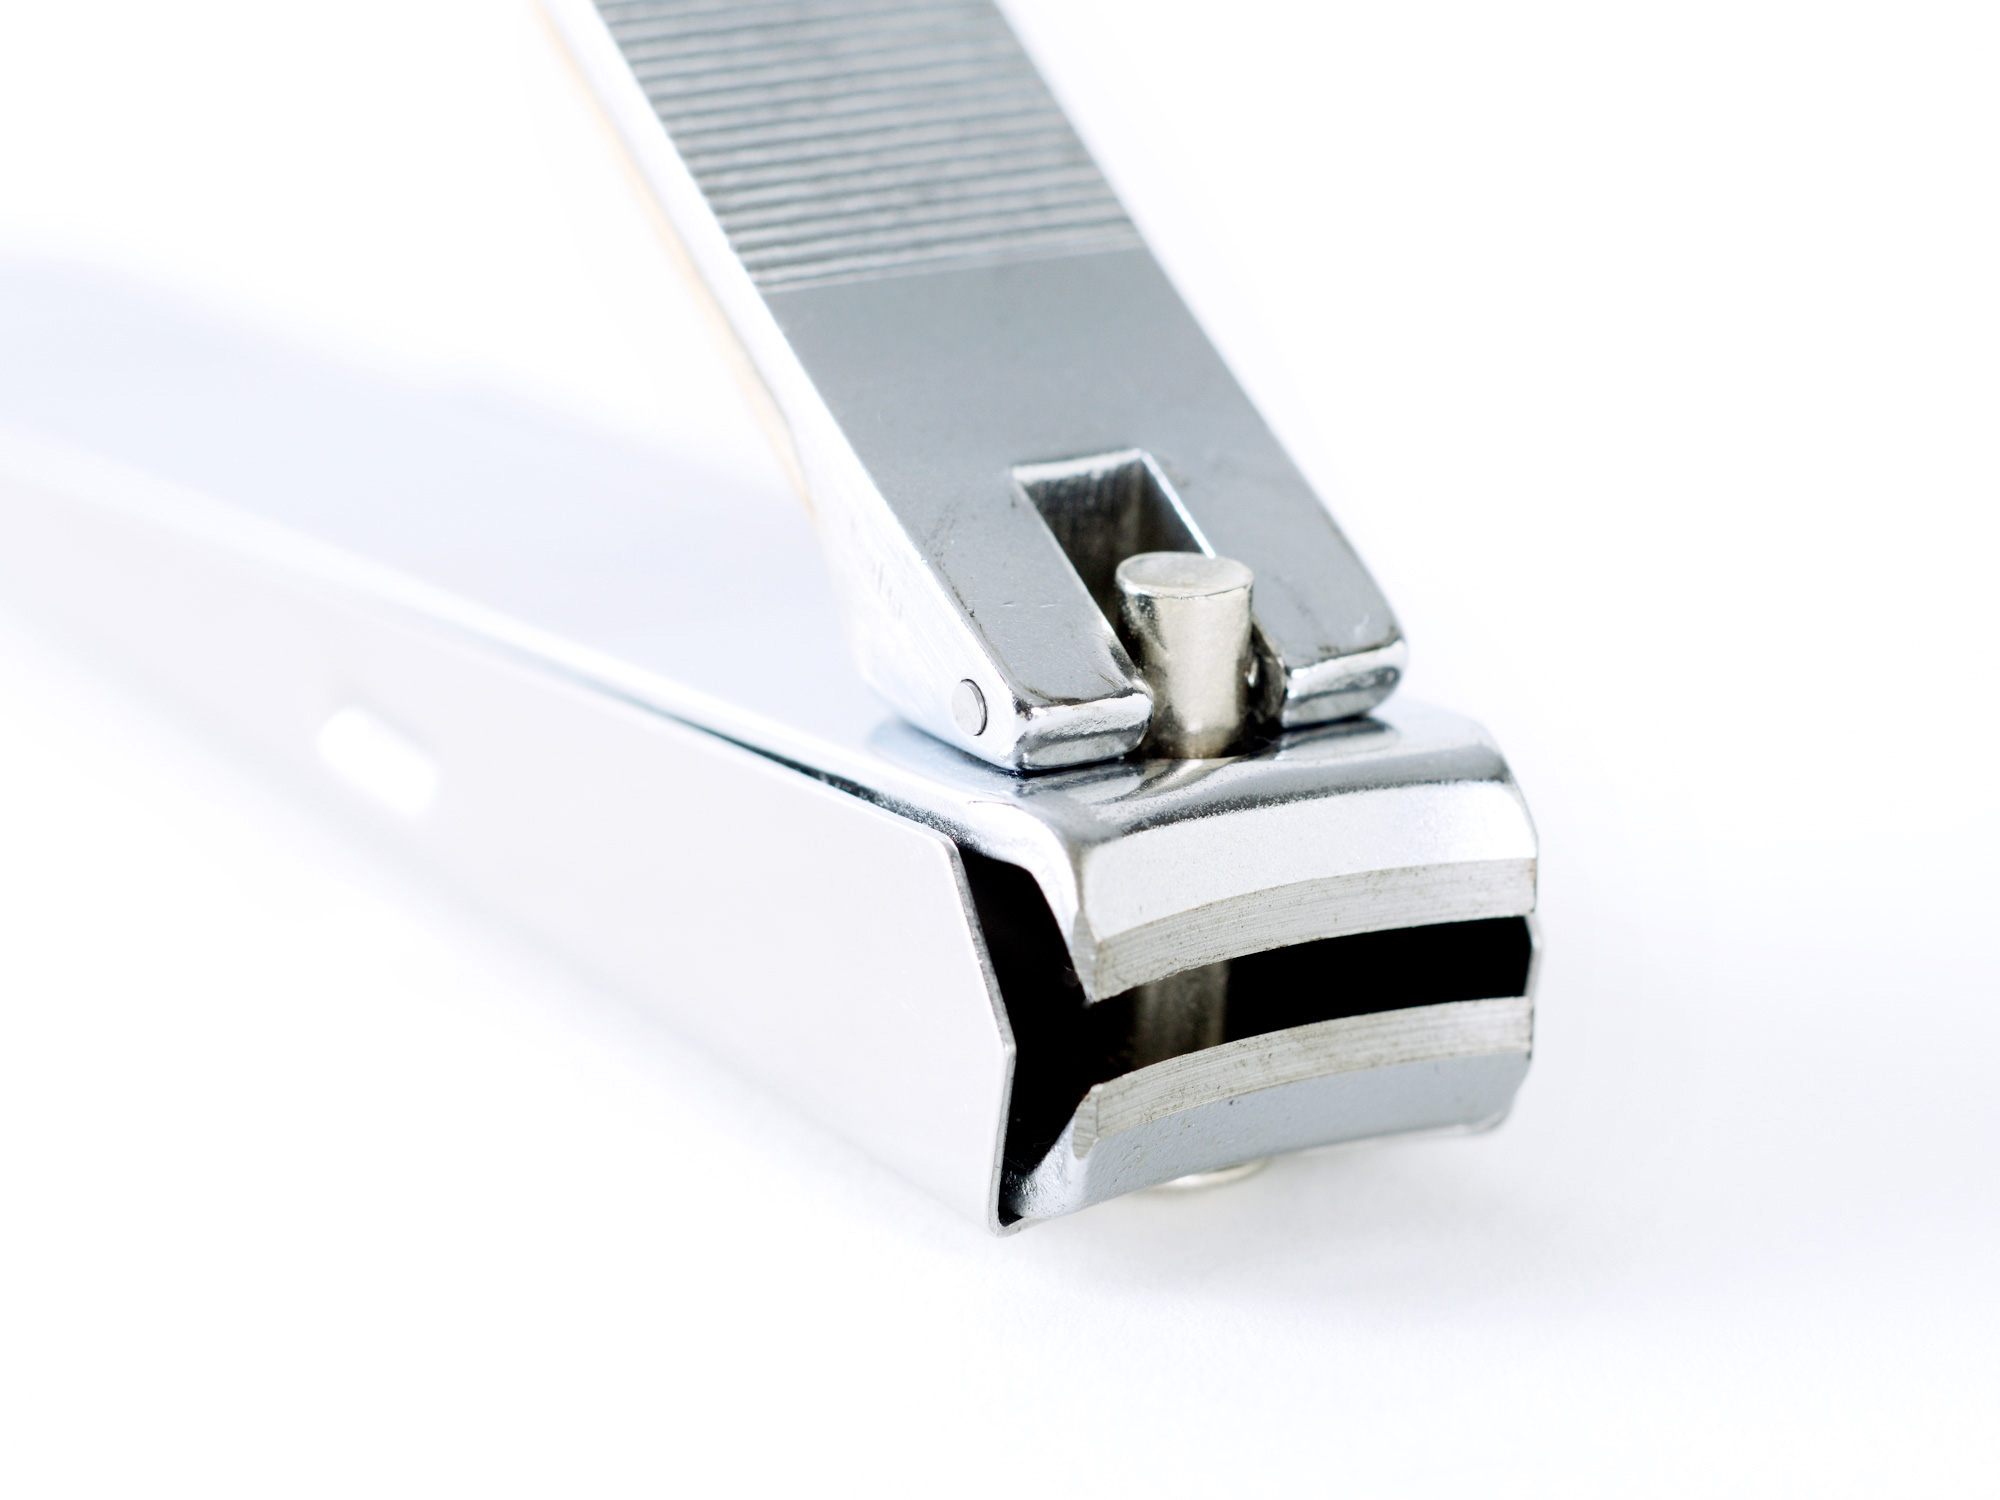 Established 1959<br /> These keen-edged nail clippers are made by craftsmen carrying on the skills of traditional swordsmiths